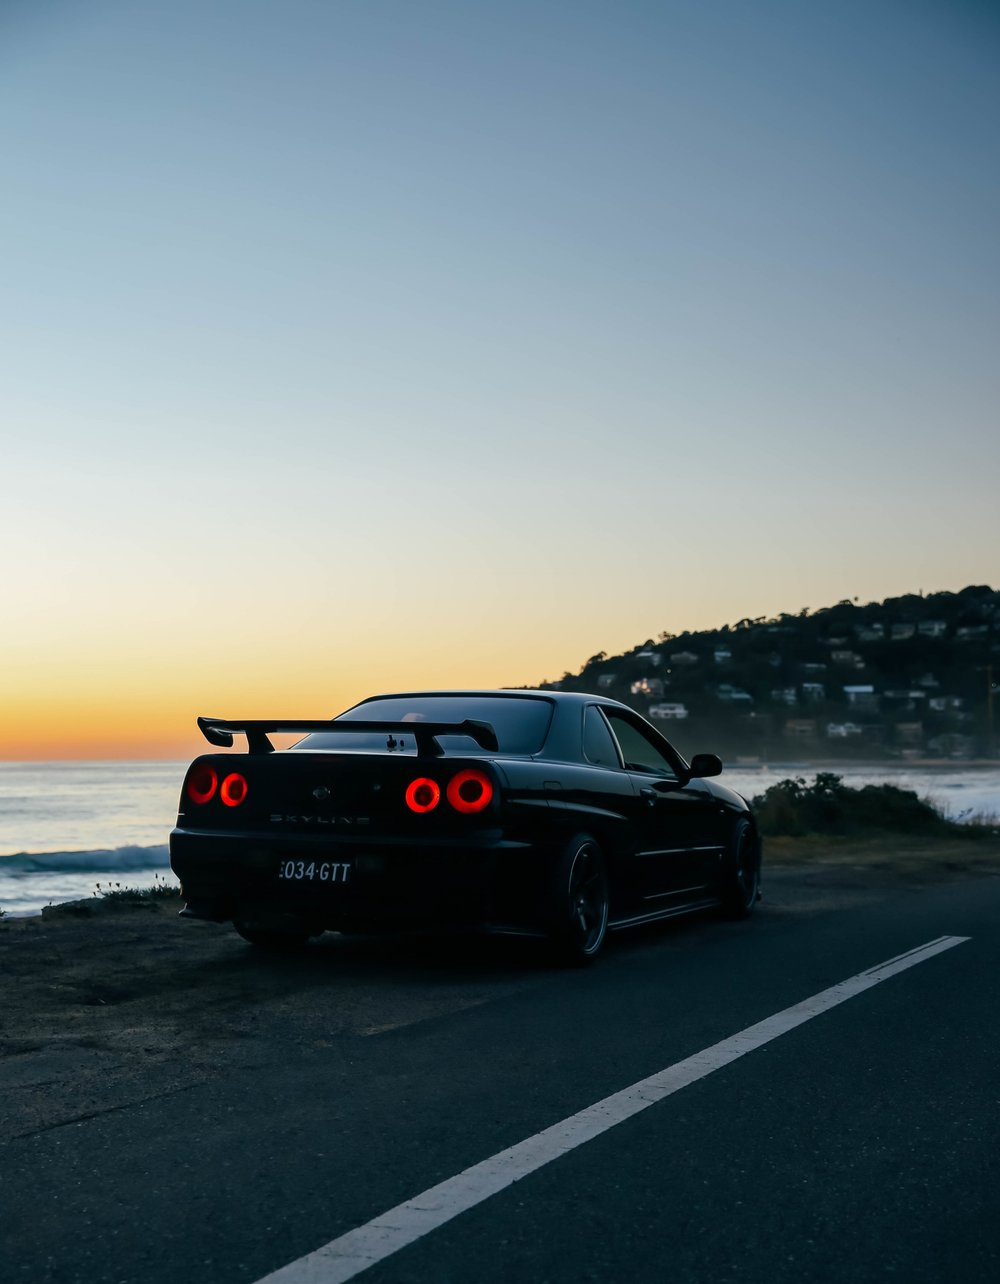 My R34 during the sunrise at one of my favourite spots in Palm Beach.